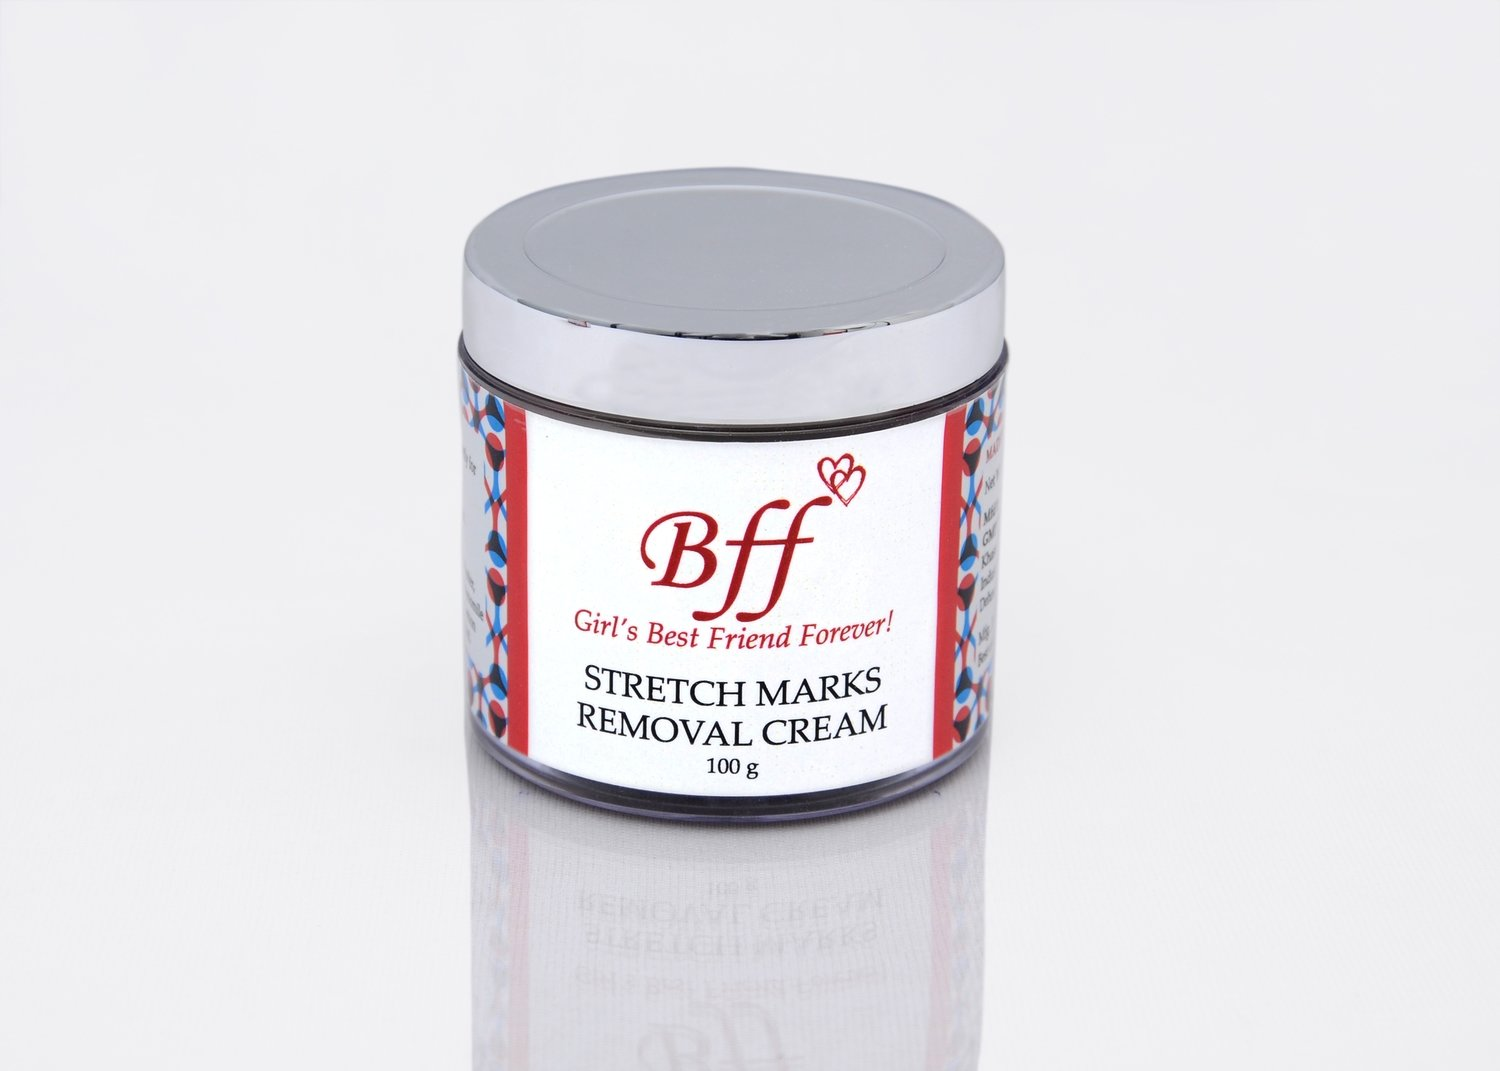 Stretch Marks Removal Cream